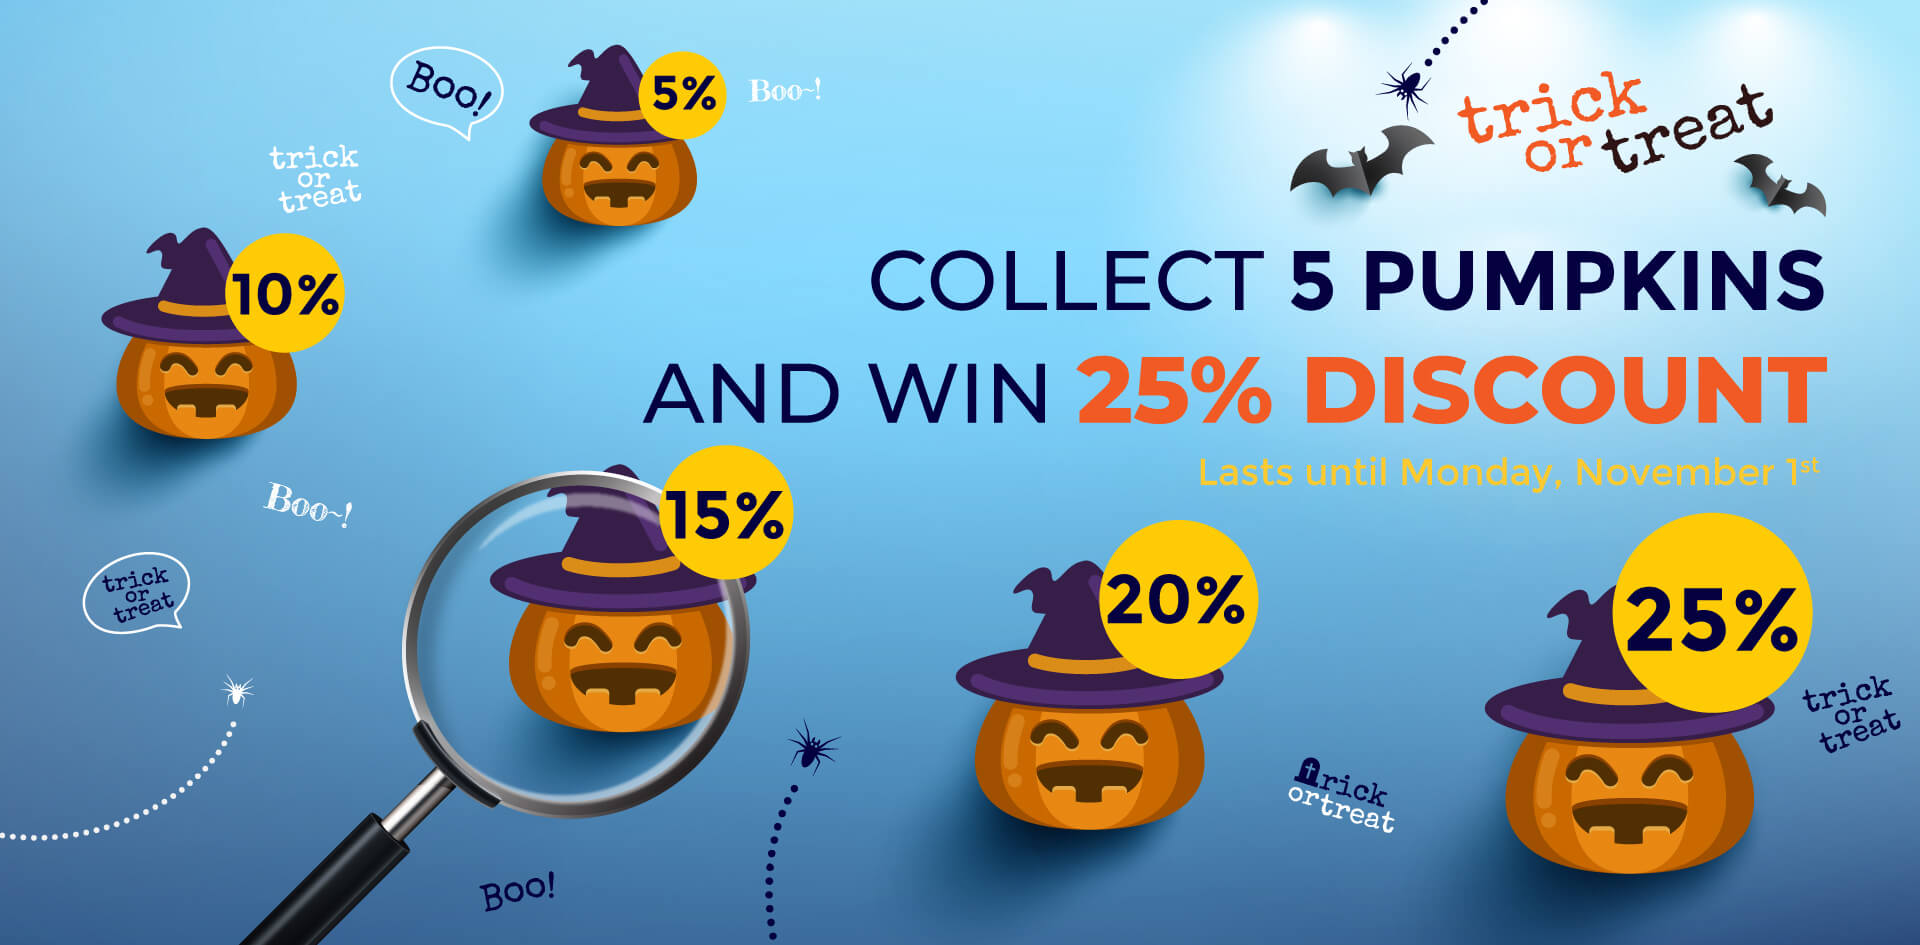 Trick or Treat - up to 25% discount